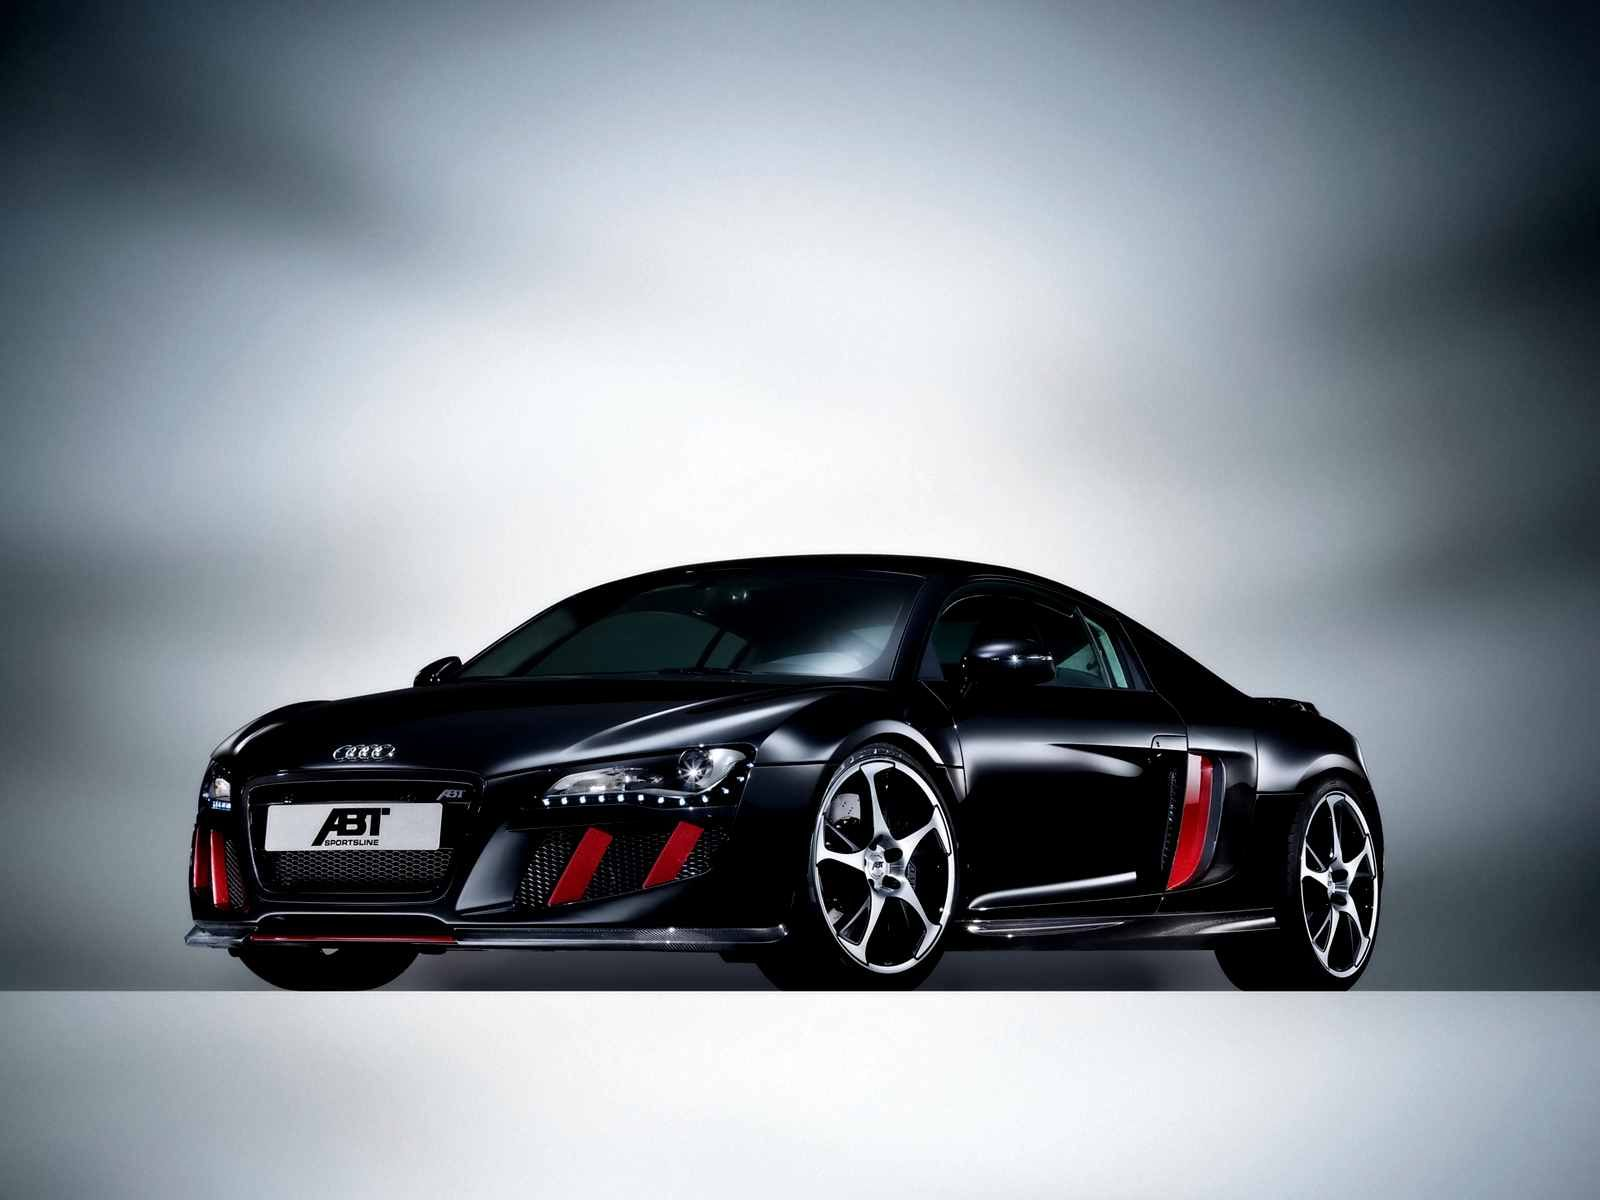 2008 Abt Audi R8 Audi Car Wallpaper Audi Car Wallpapers For